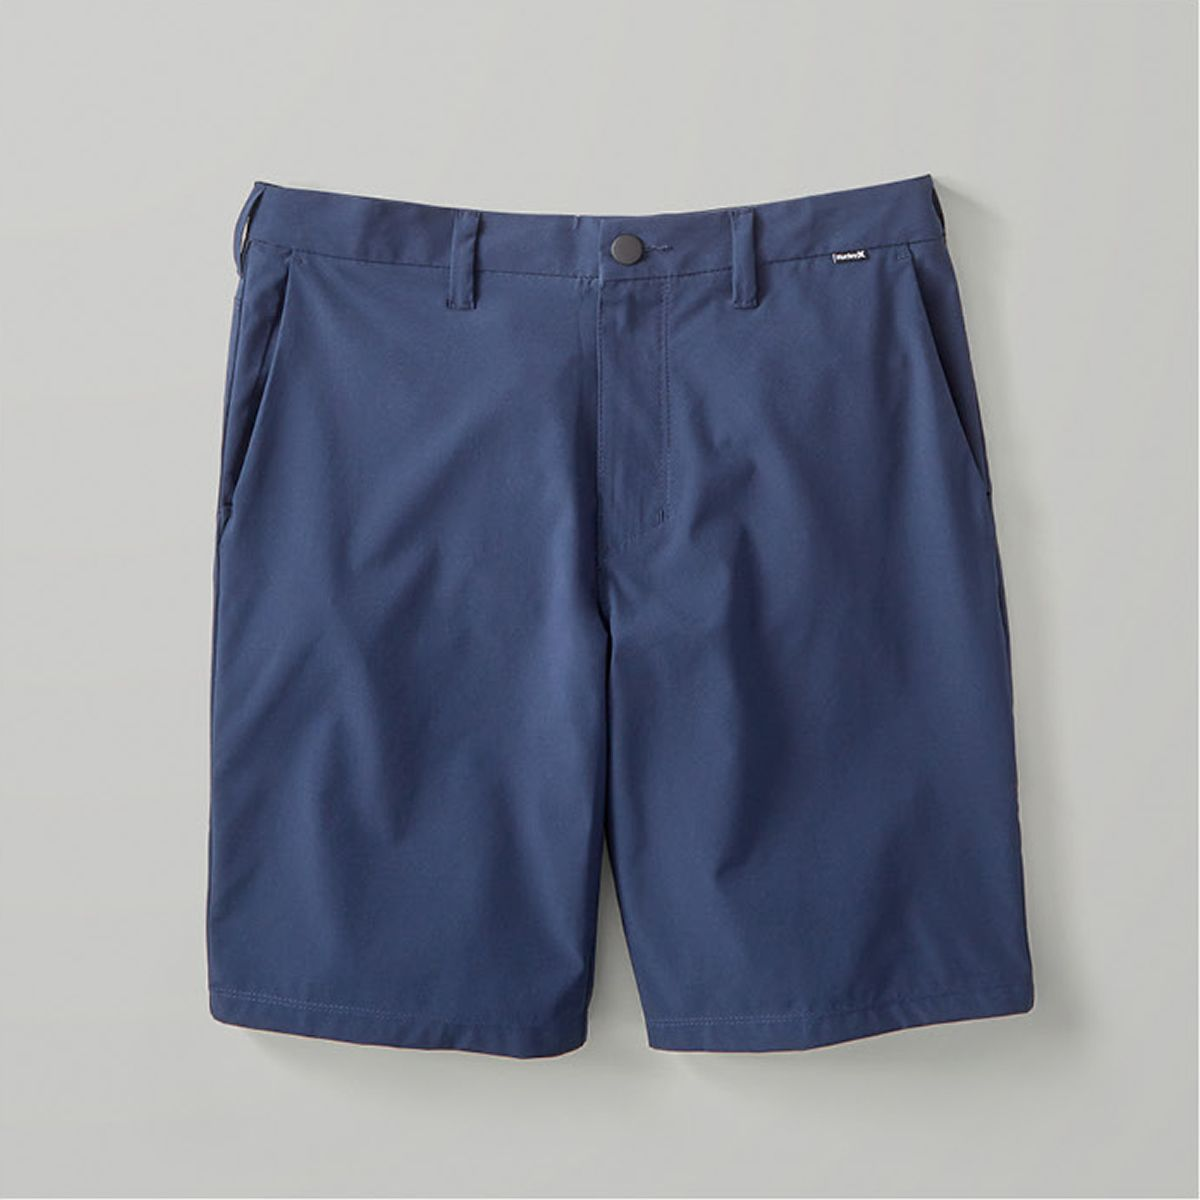 4789b0f1fd9 Mens Swimwear & Men's Swim Trunks - Macy's